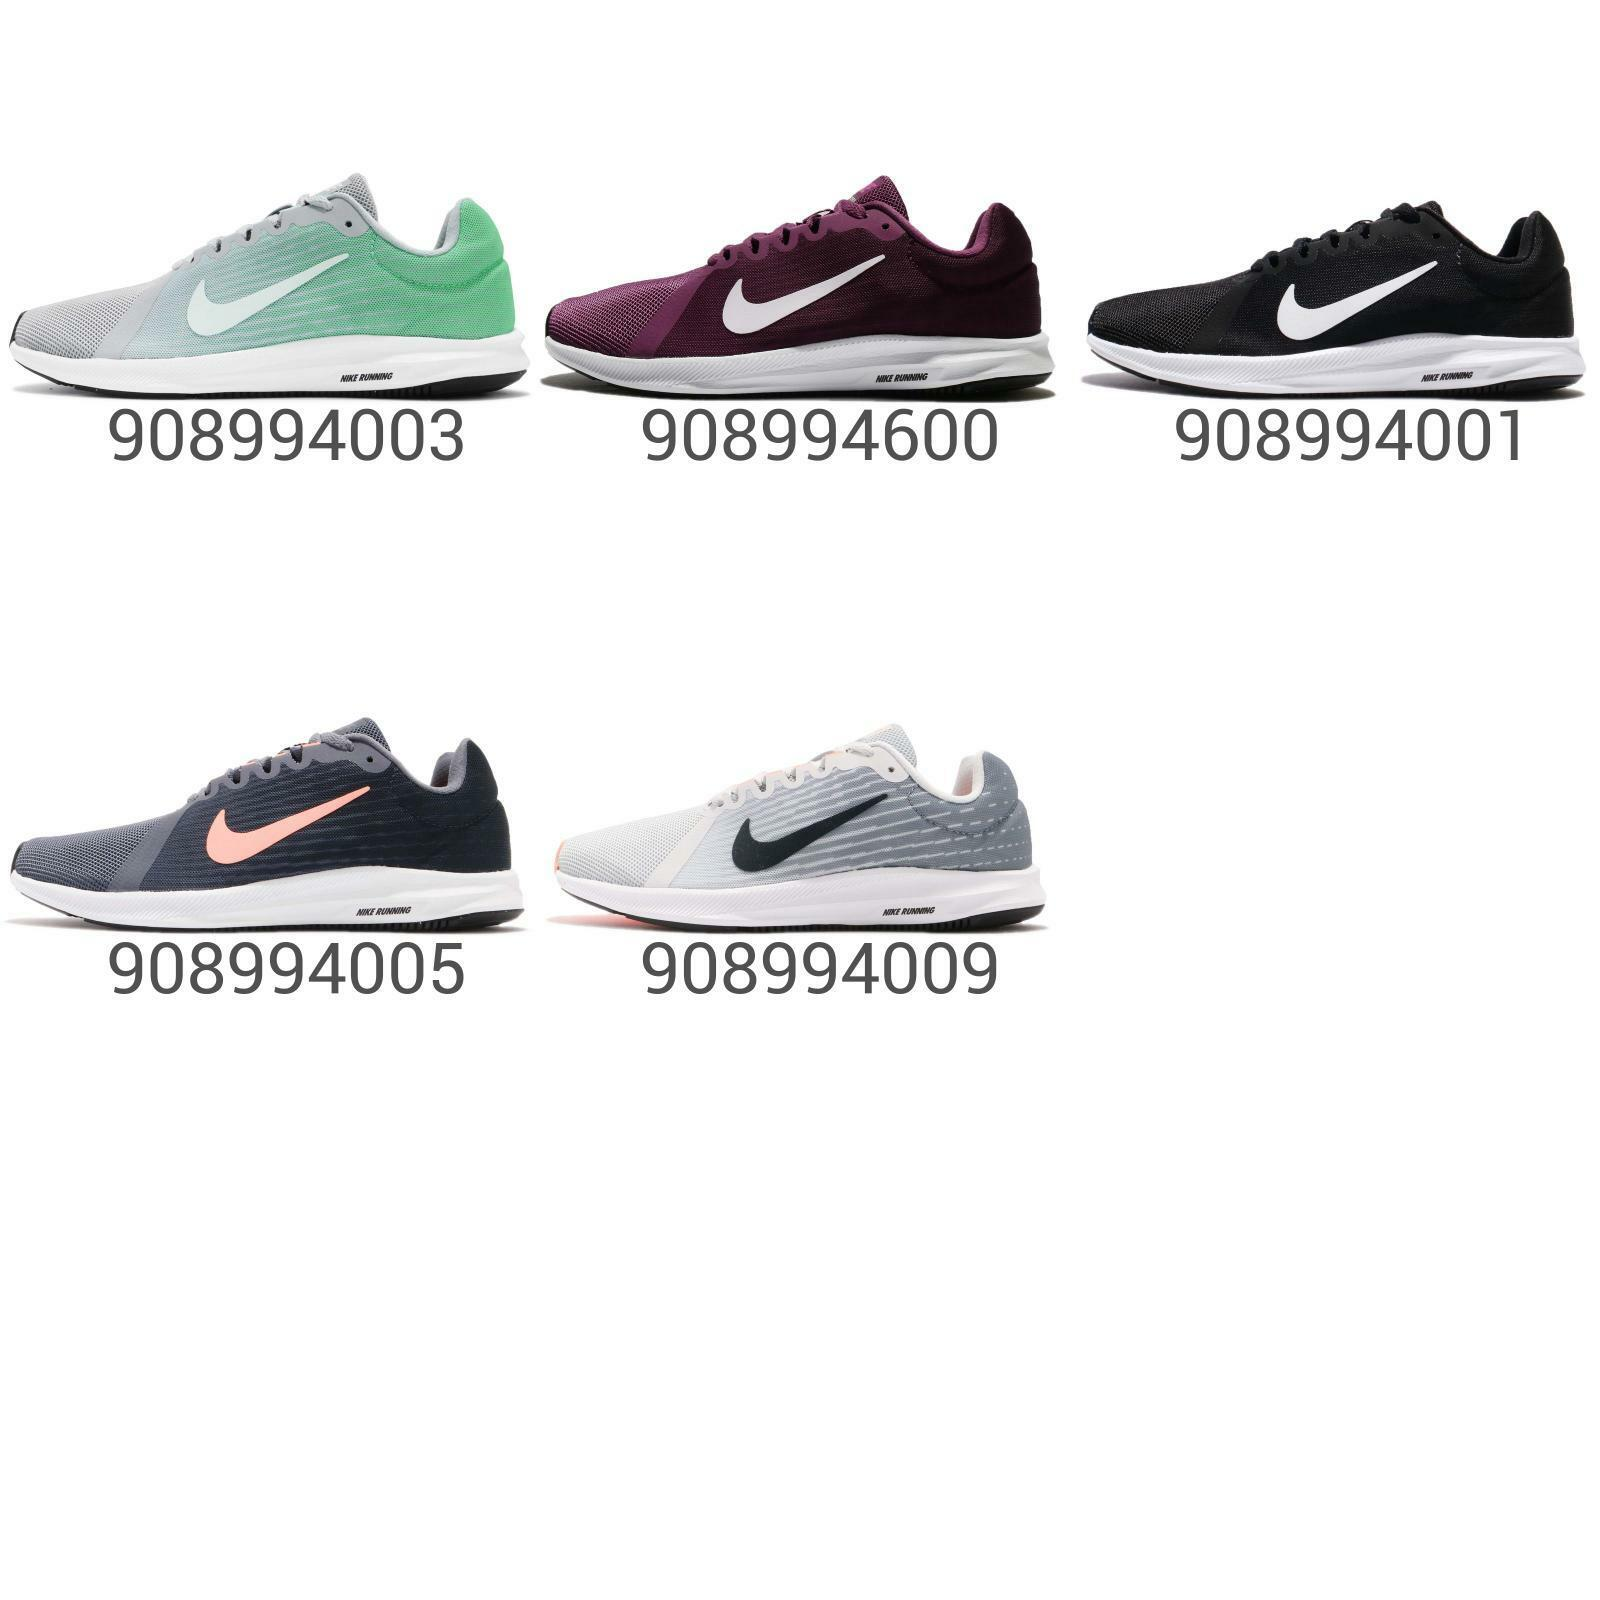 Nike femmes  Downshifter 8 Baskets VIII femmes Running Chaussures Baskets 8 Trainers Pick 1 64553a